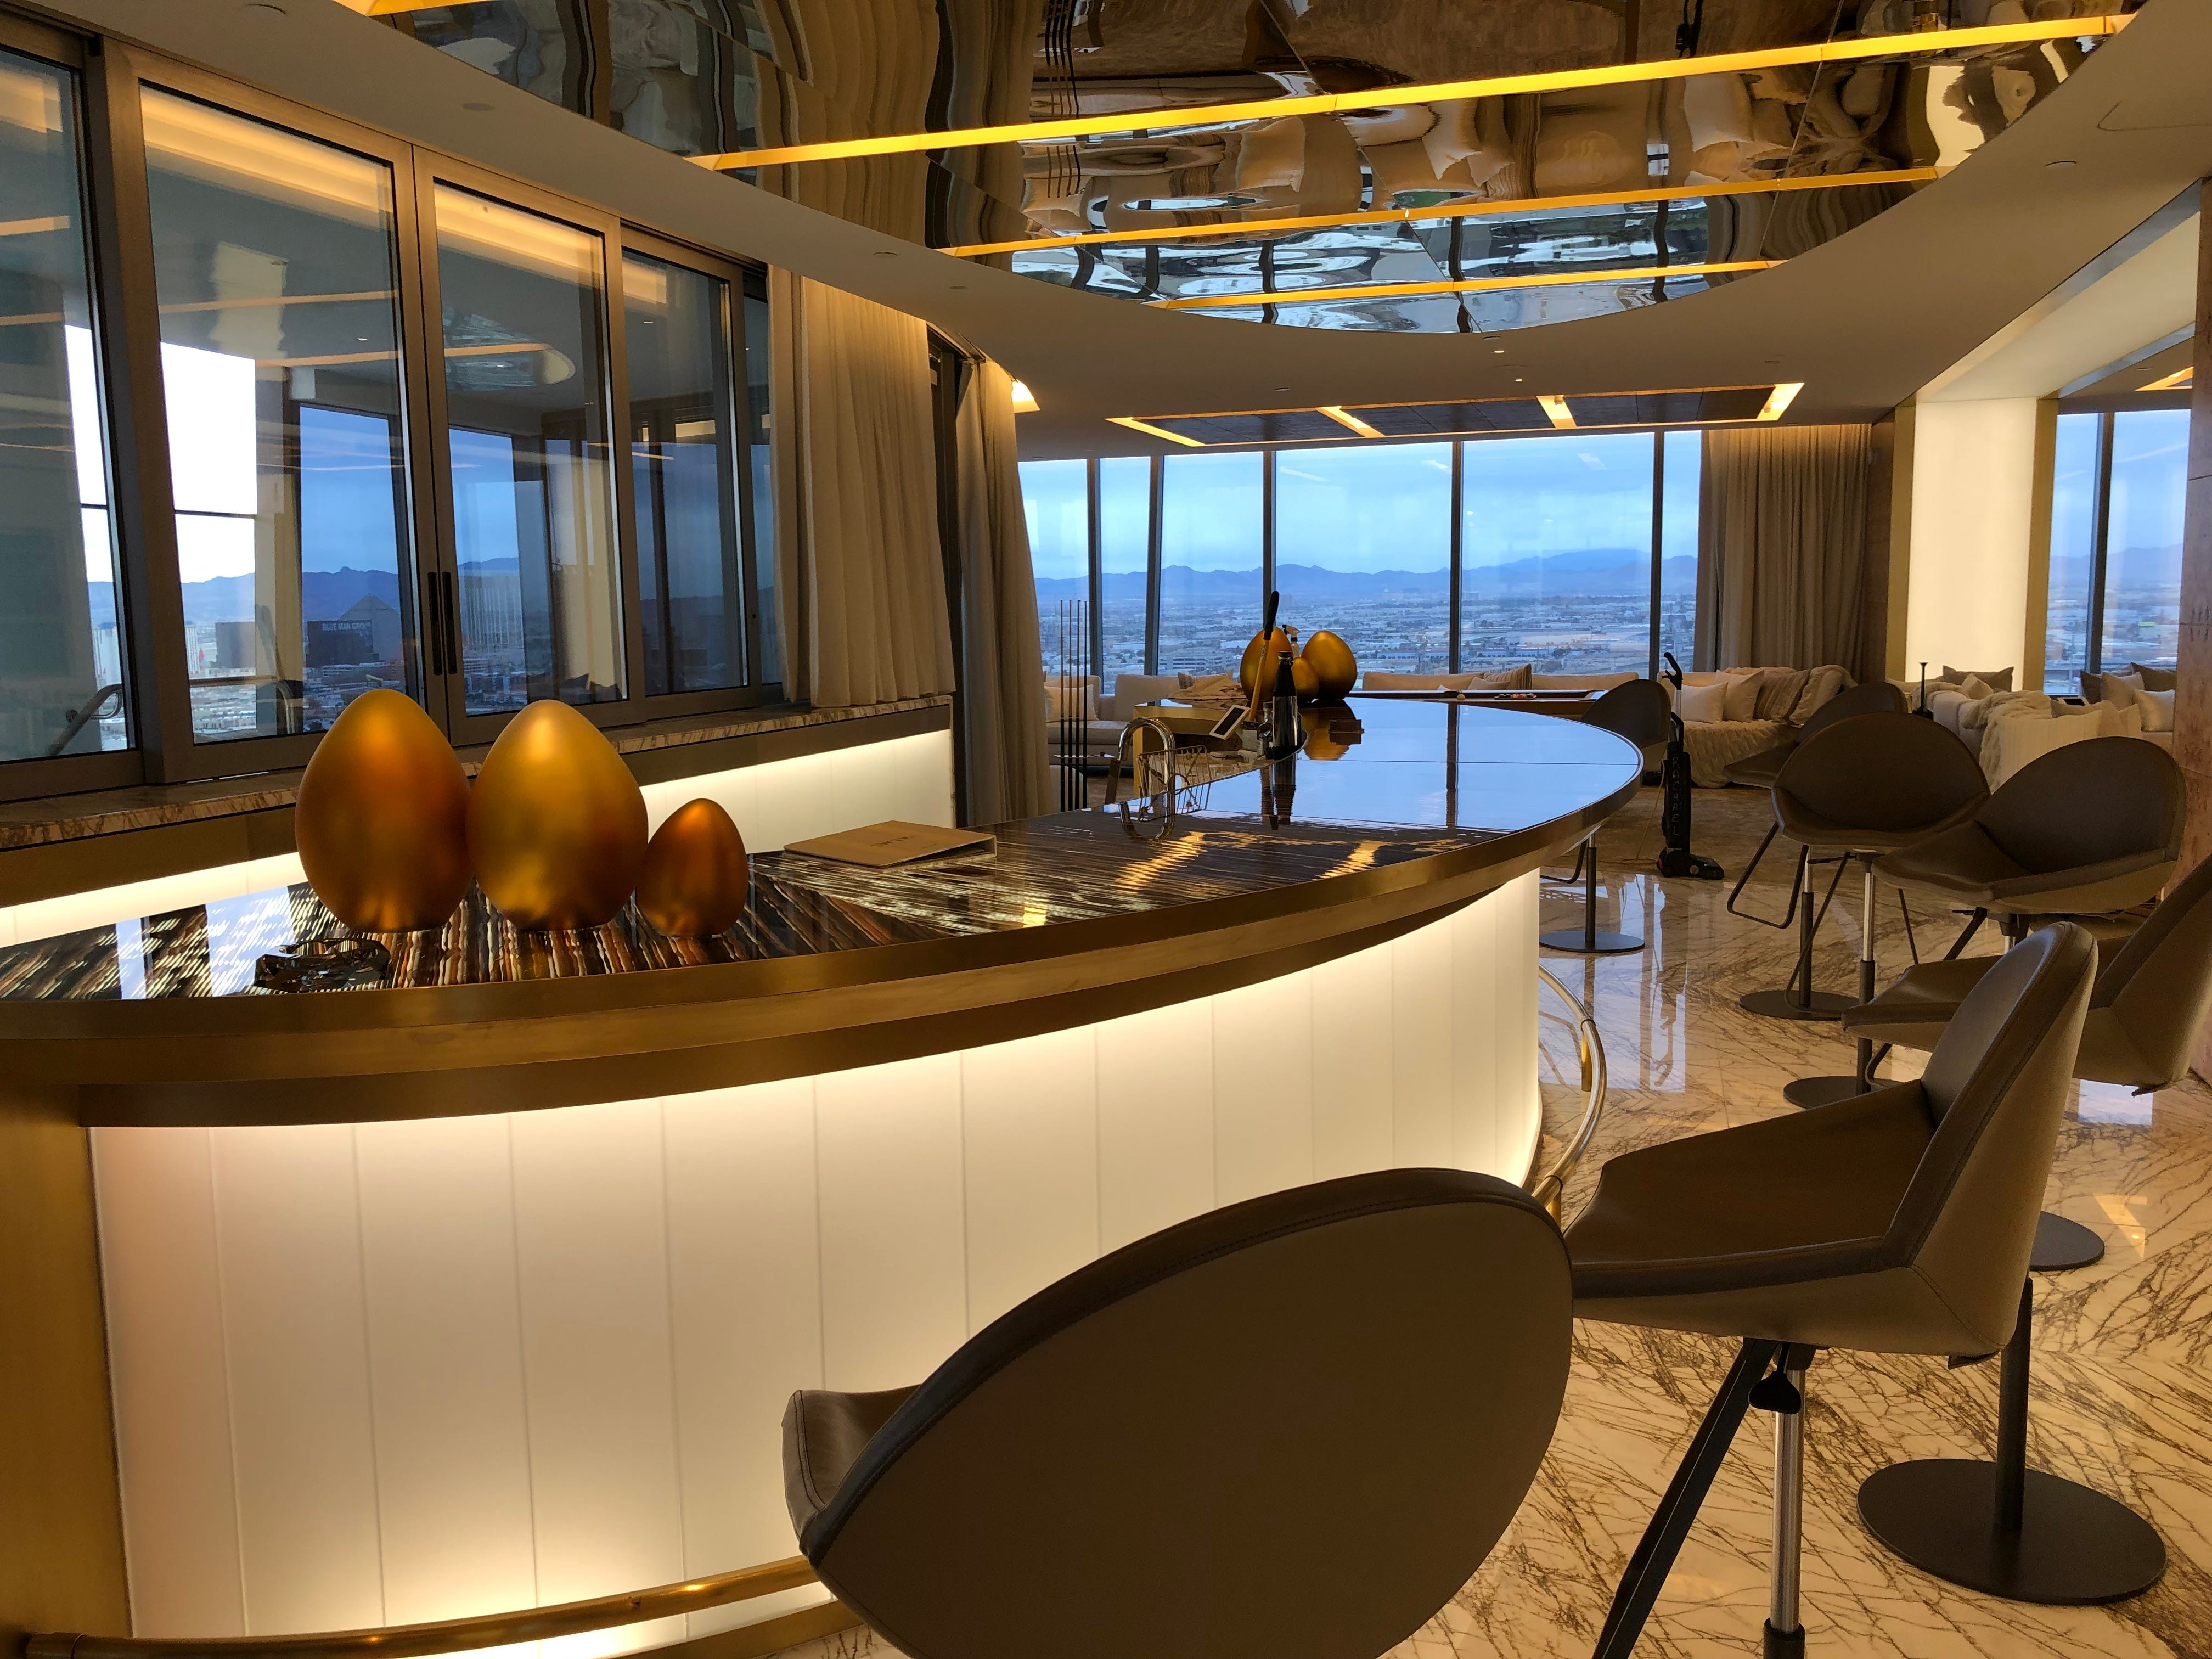 The bar in a villa suite at the Palms Casino Resort in Las Vegas.